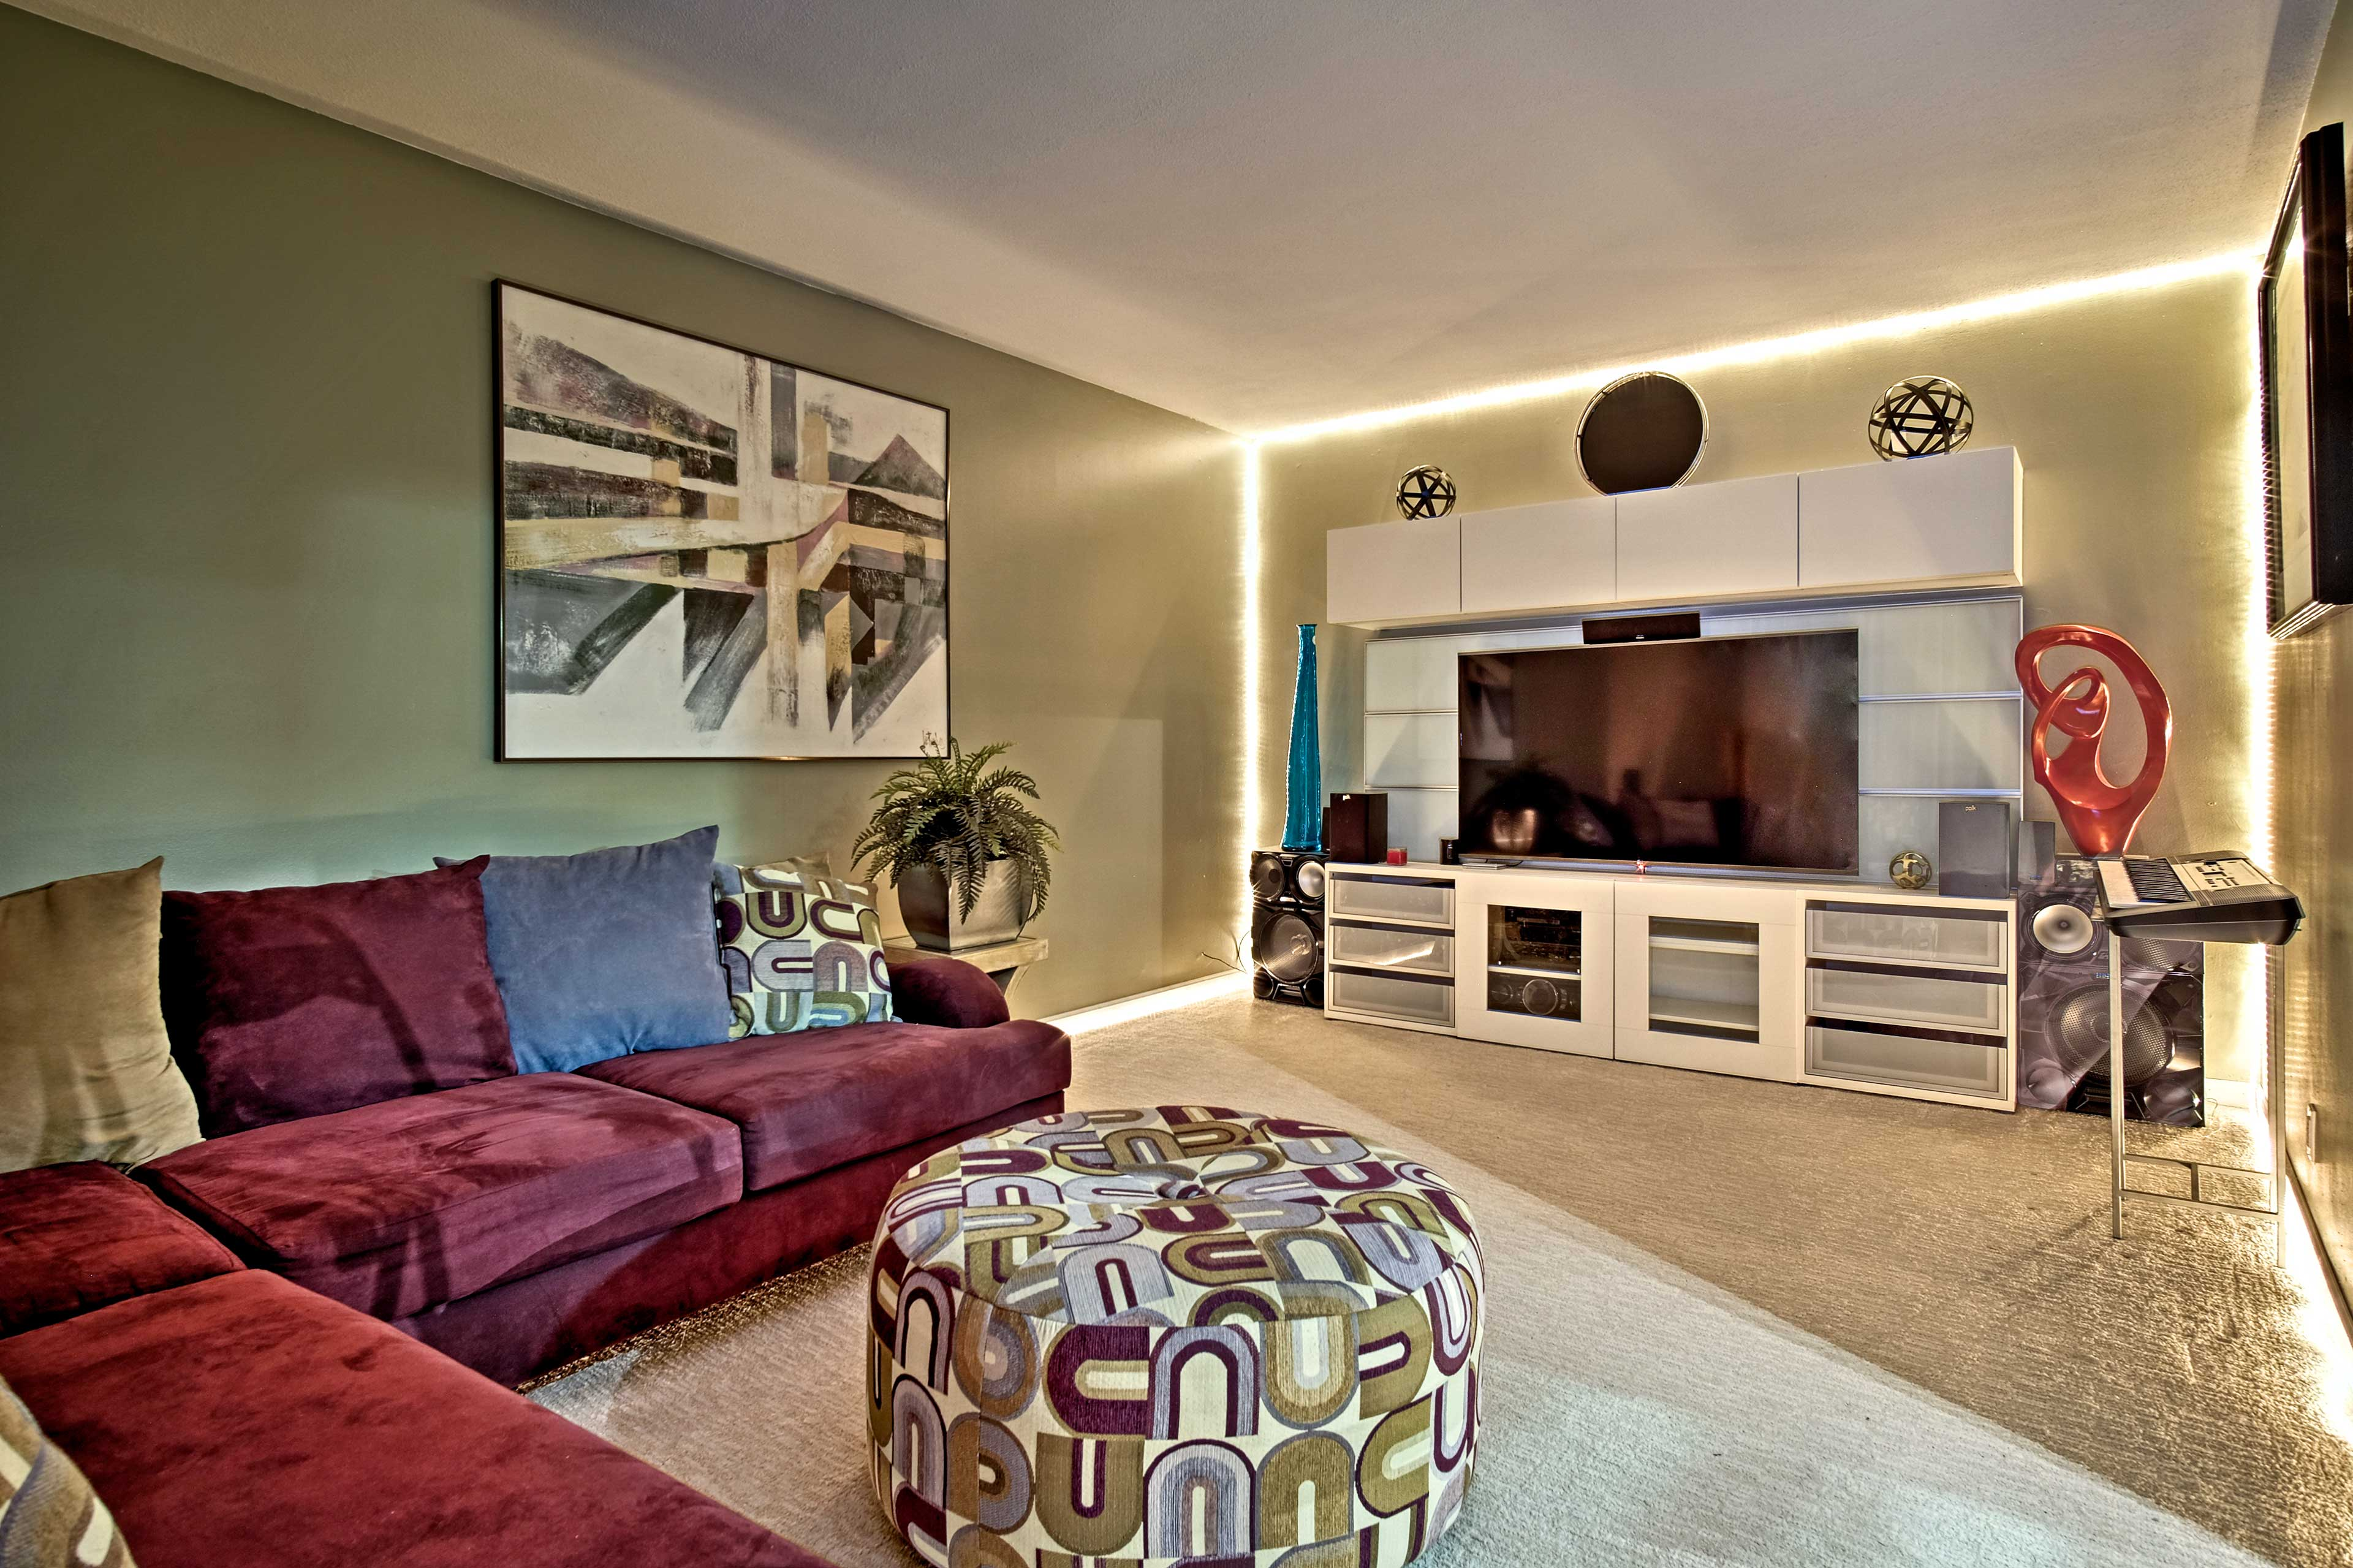 Located in Southfield, this vacation rental is just a short drive to Detroit!